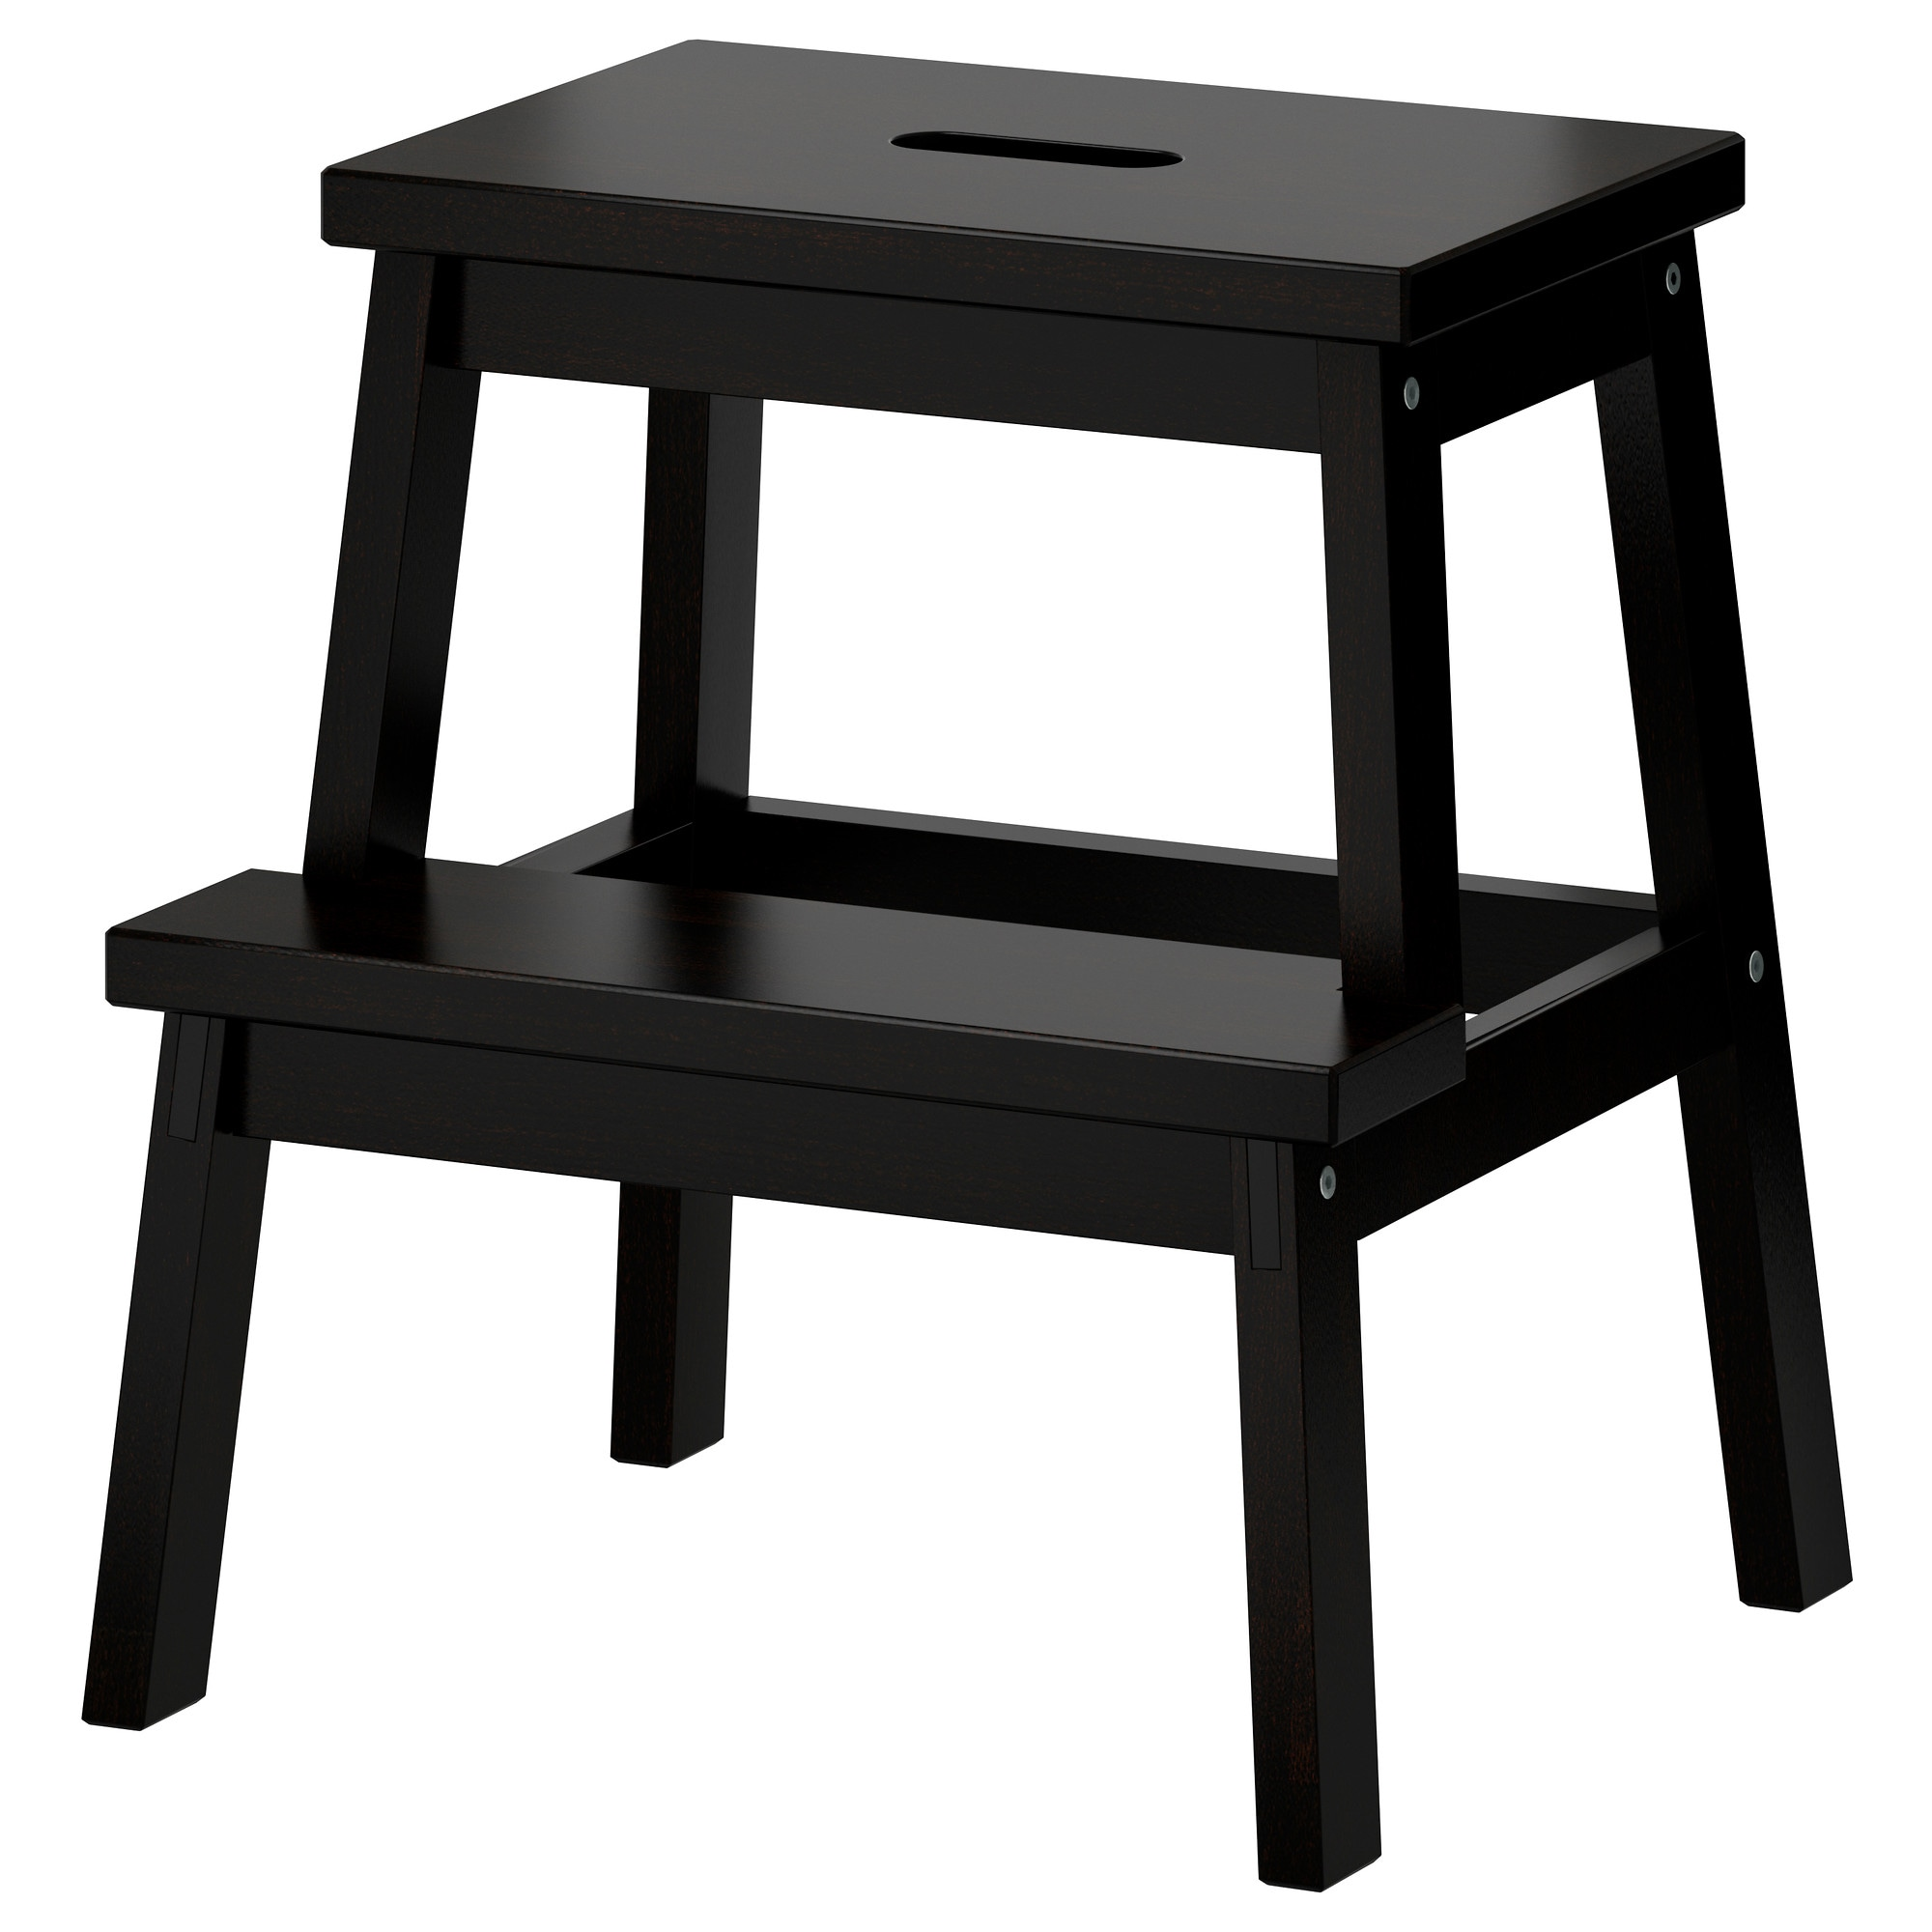 BEKVÄM step stool black Width 16 7/8   Depth 15 3  sc 1 st  Ikea & Kitchen Step Stools and Step Ladders - IKEA islam-shia.org